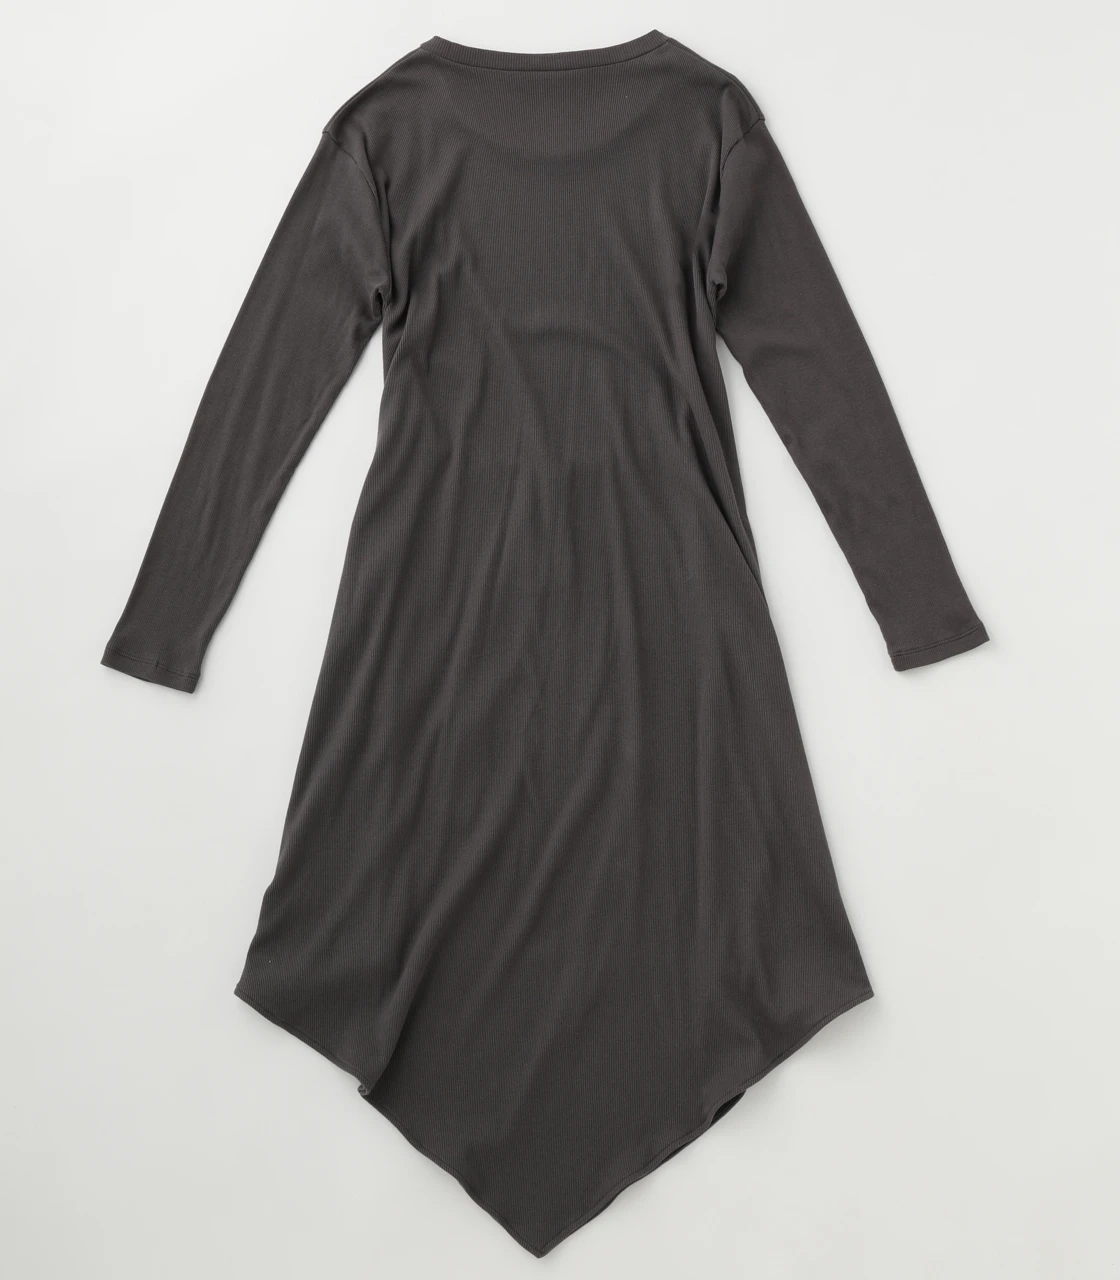 BLACK BY MOUSSY(ブラックバイマウジー) |2way drape tereco one-piece